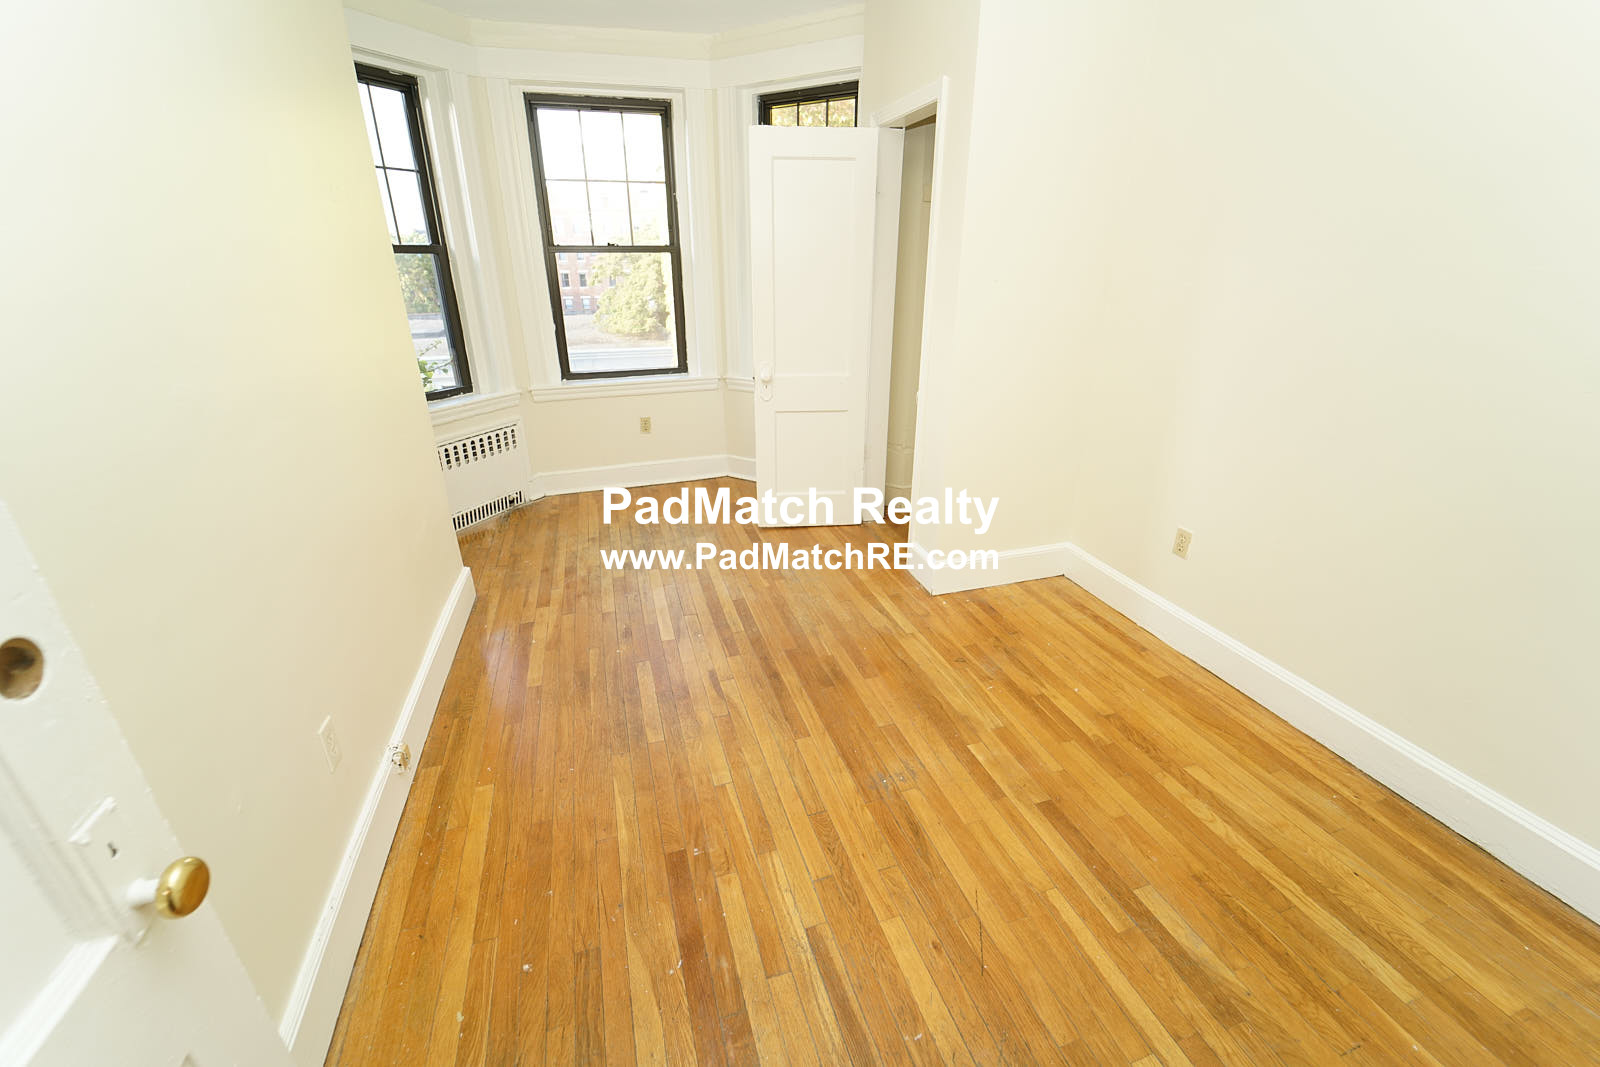 2.8 Beds, 1 Bath apartment in Boston, Fenway for $2,995